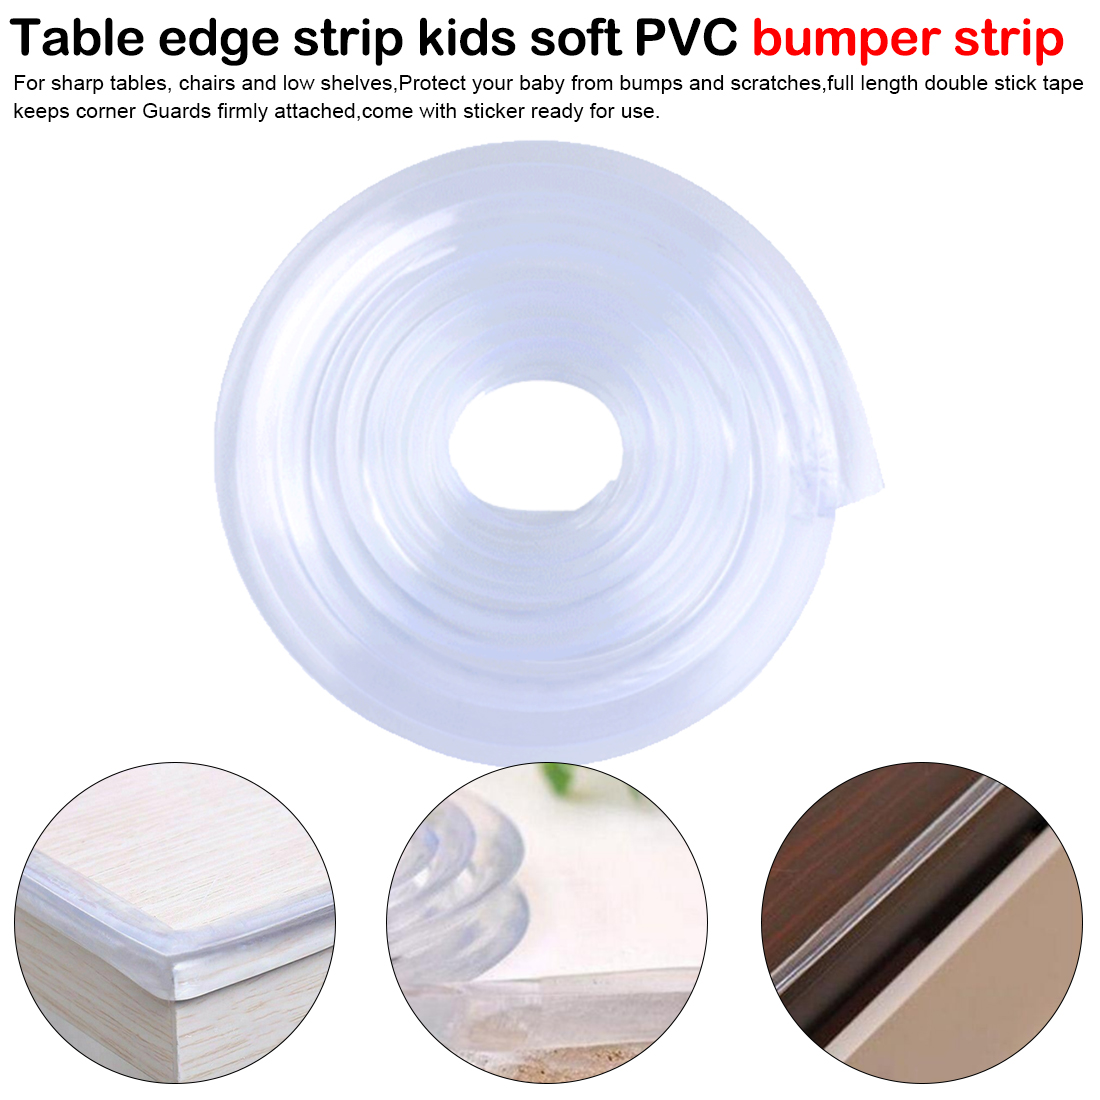 Transparent Table Corner Protector Strip Safety Protection From Children On Furniture Soft Silicone Edge Bumper Baby Products 1m